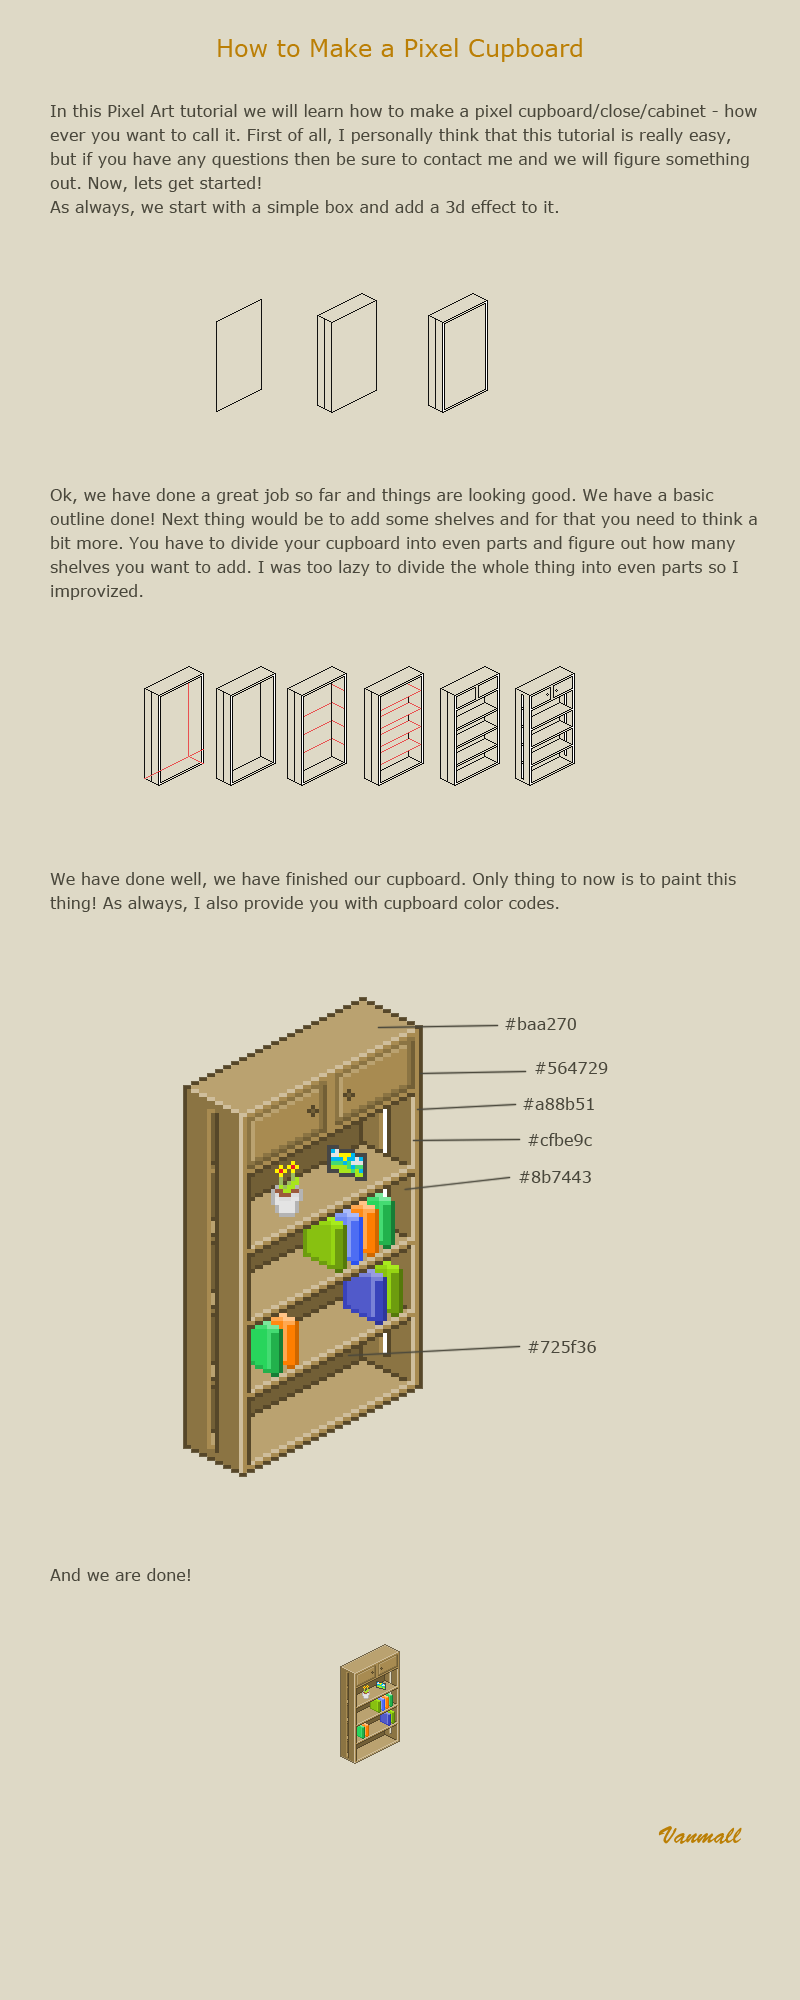 How to make a pixel cupboard by vanmall